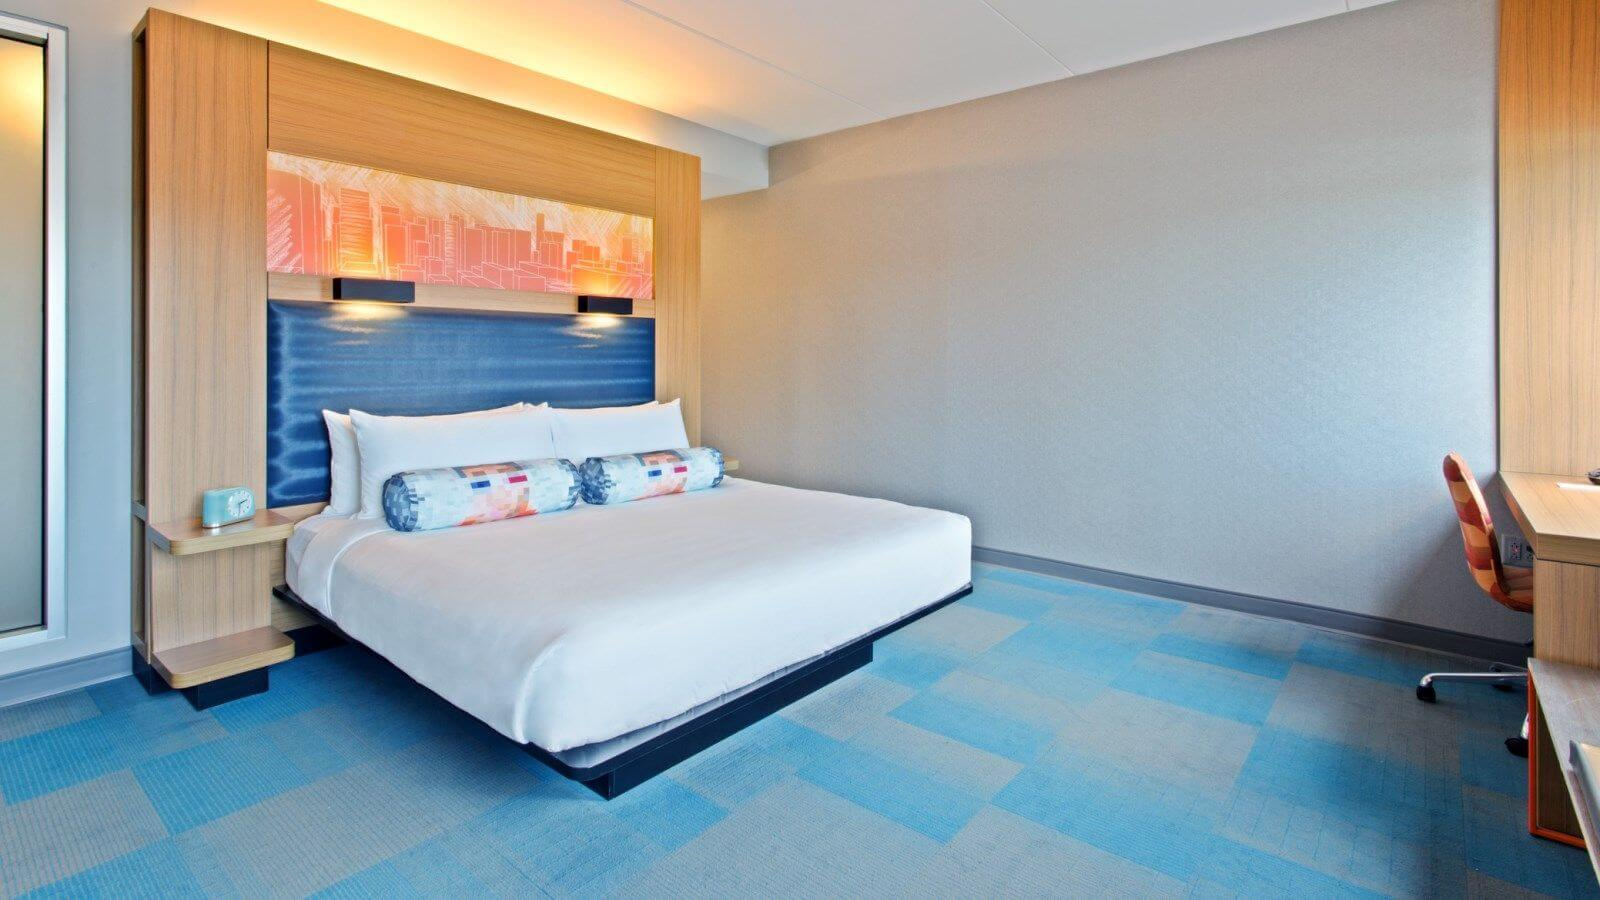 Colorful, current and cool describes the rooms at ALoft SoHo Square. Image: Aloft SoHo Square